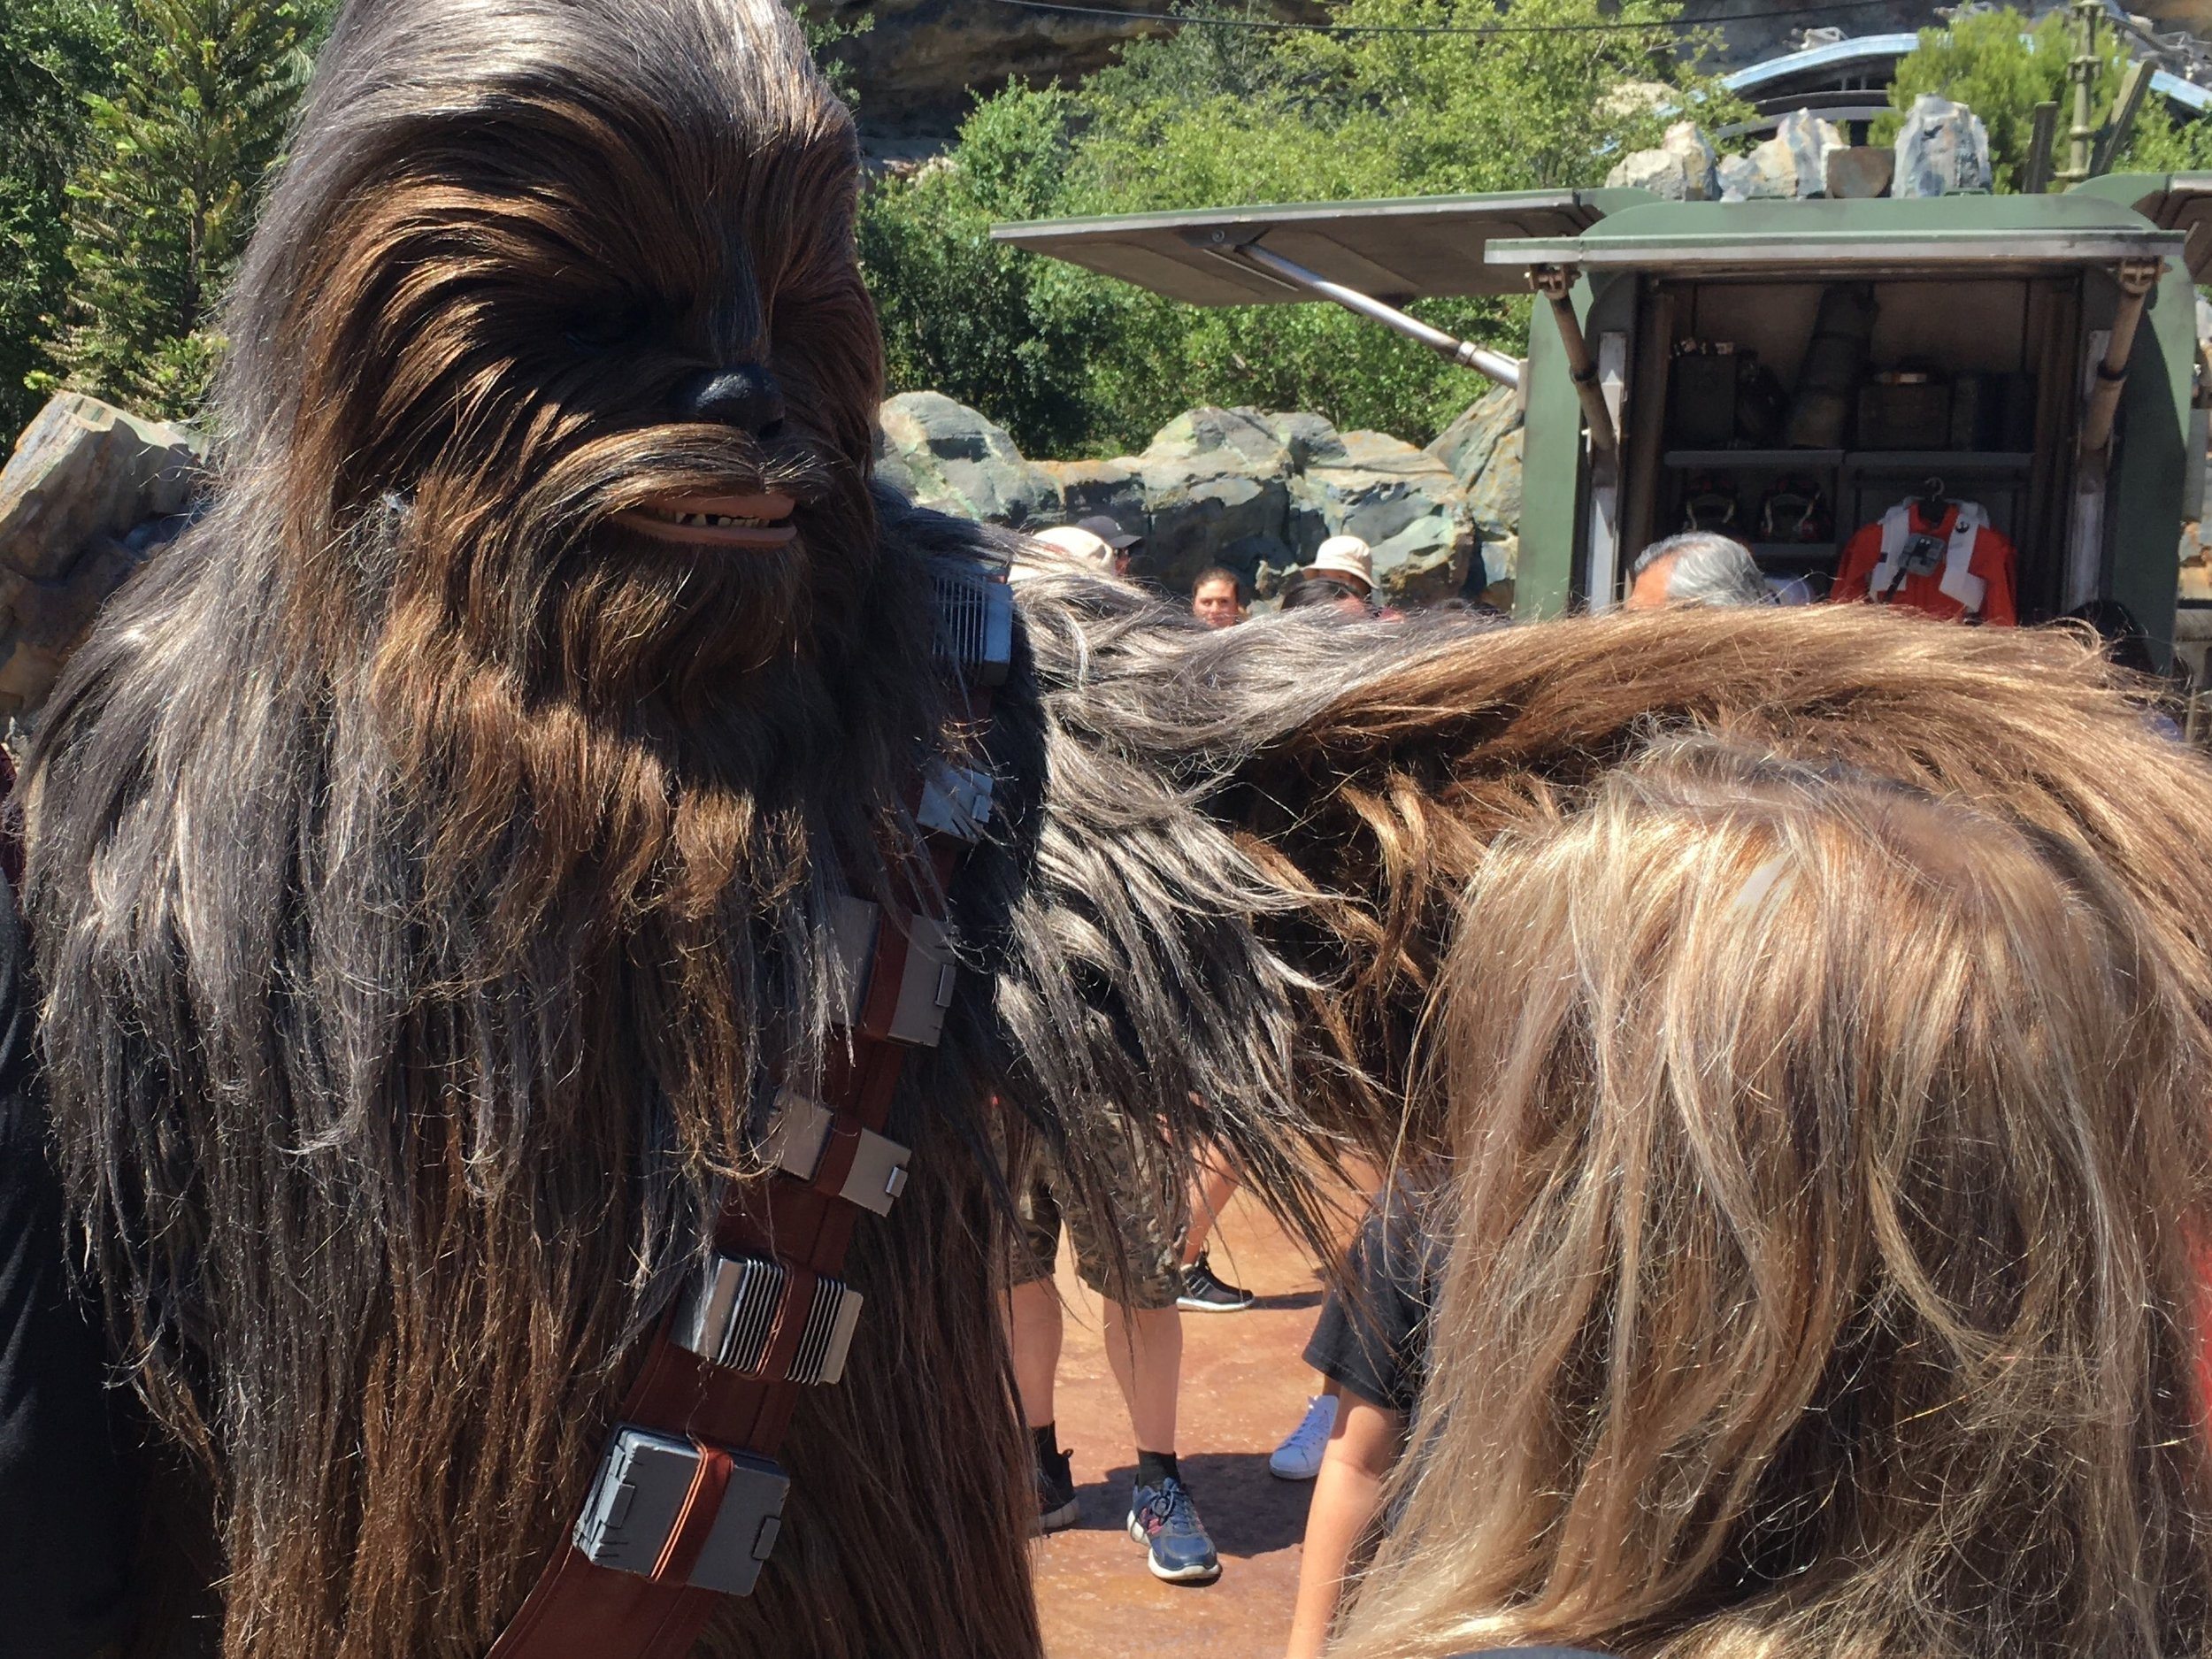 The Wookiee Makes The First Move…